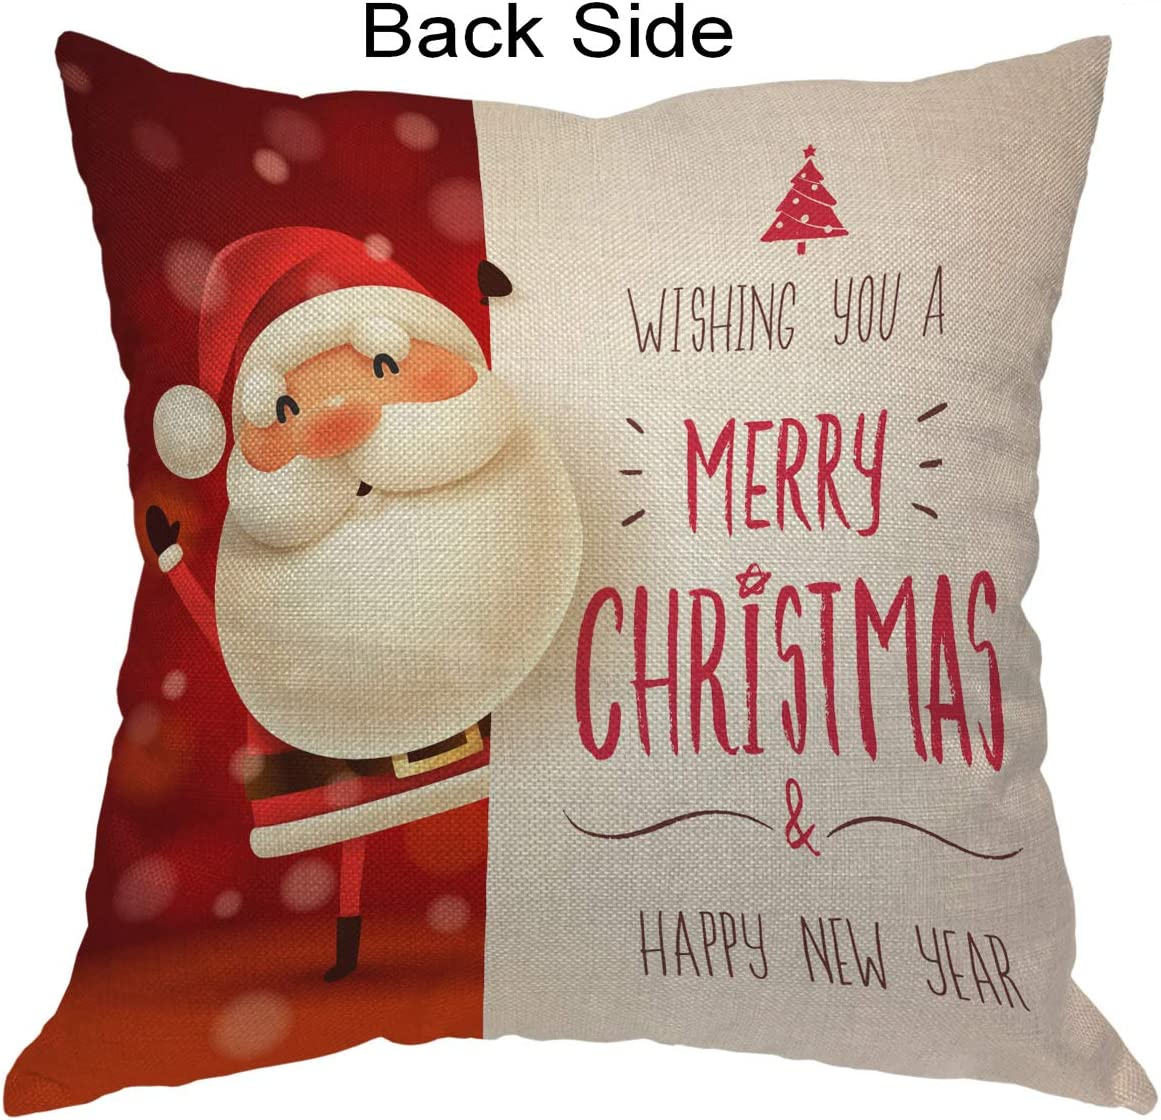 Amazon Com Moslion Quote Pillow Cover Santa Claus Merry Christmas Happy New Year Word Throw Pillow Case 18x18 Inch Cotton Linen Square Cushion Decorative Cover For Sofa Bed Red Home Kitchen